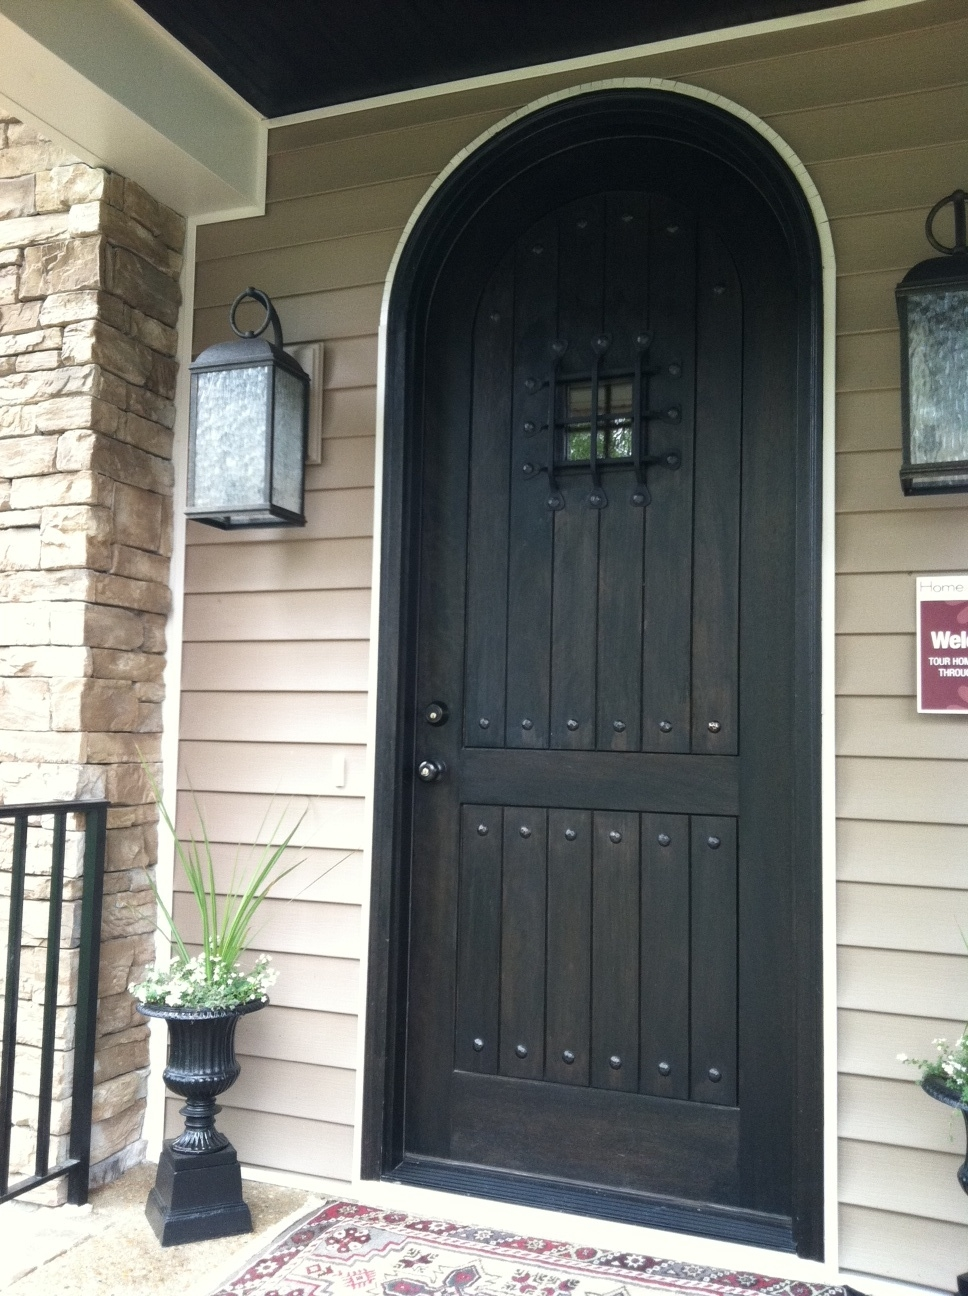 Her late night cravings richmond homearama trends - Doors for arched doorways ...